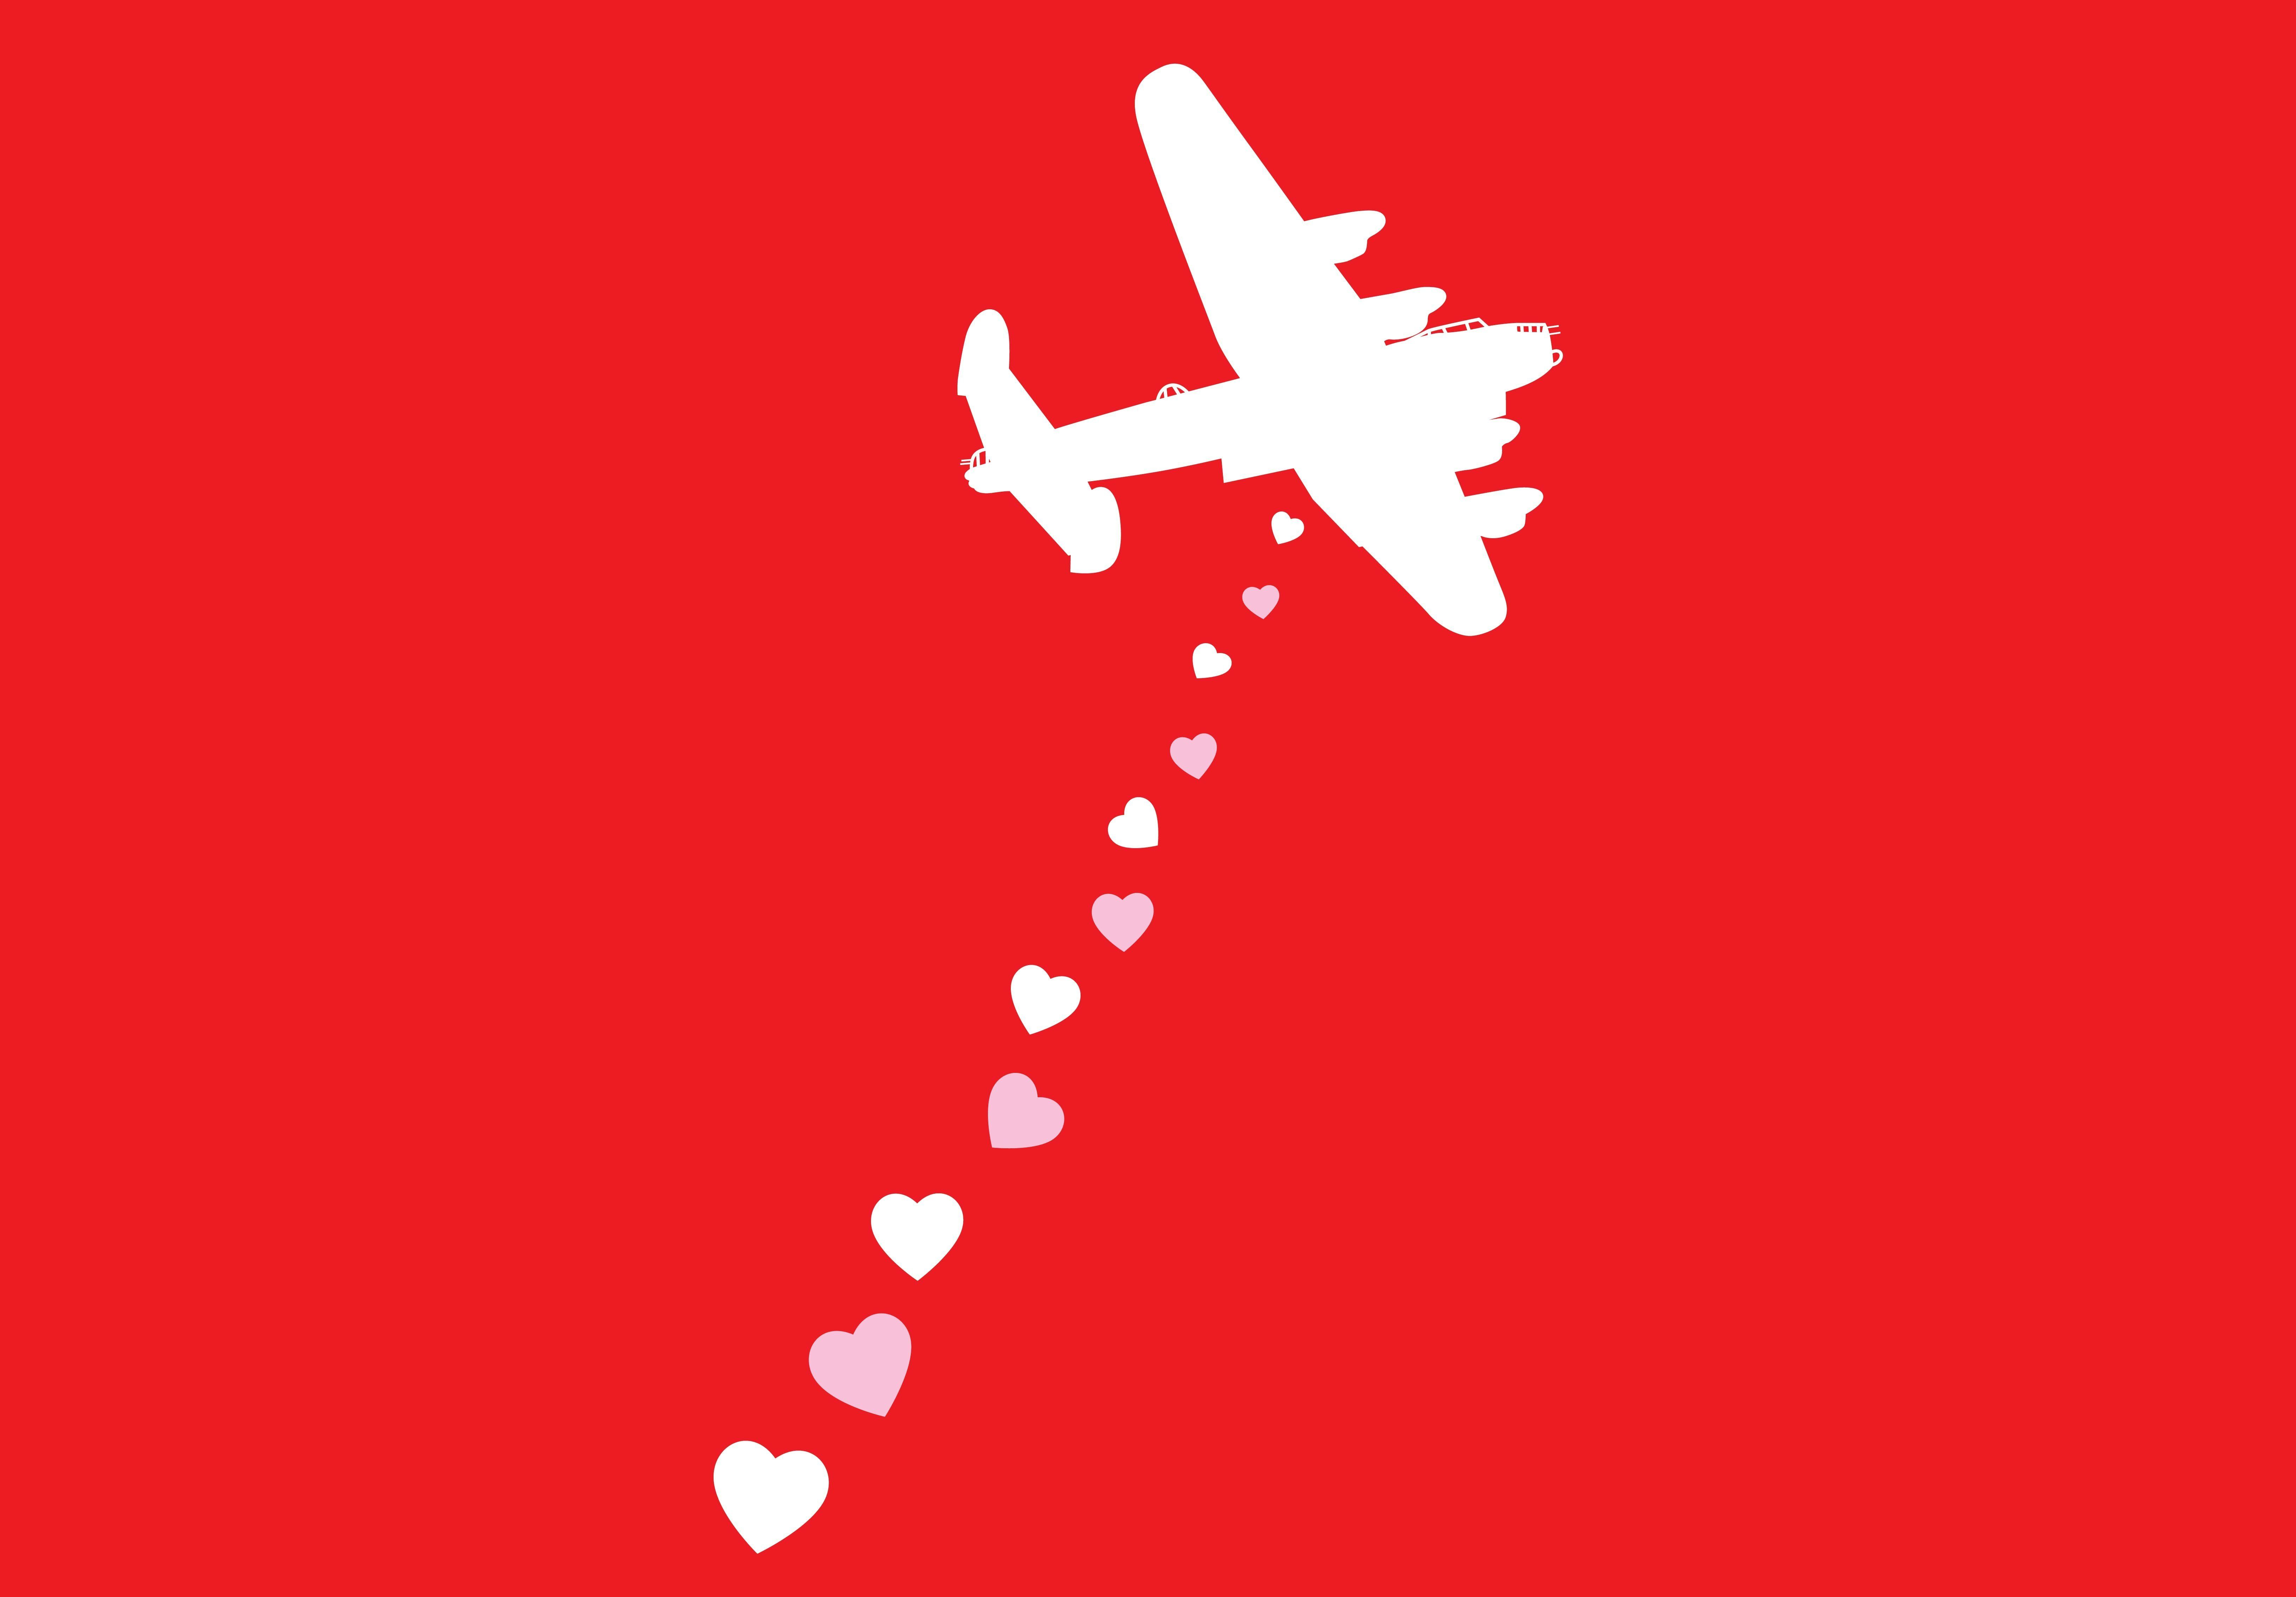 There's Nothing Romantic About Love Bombing